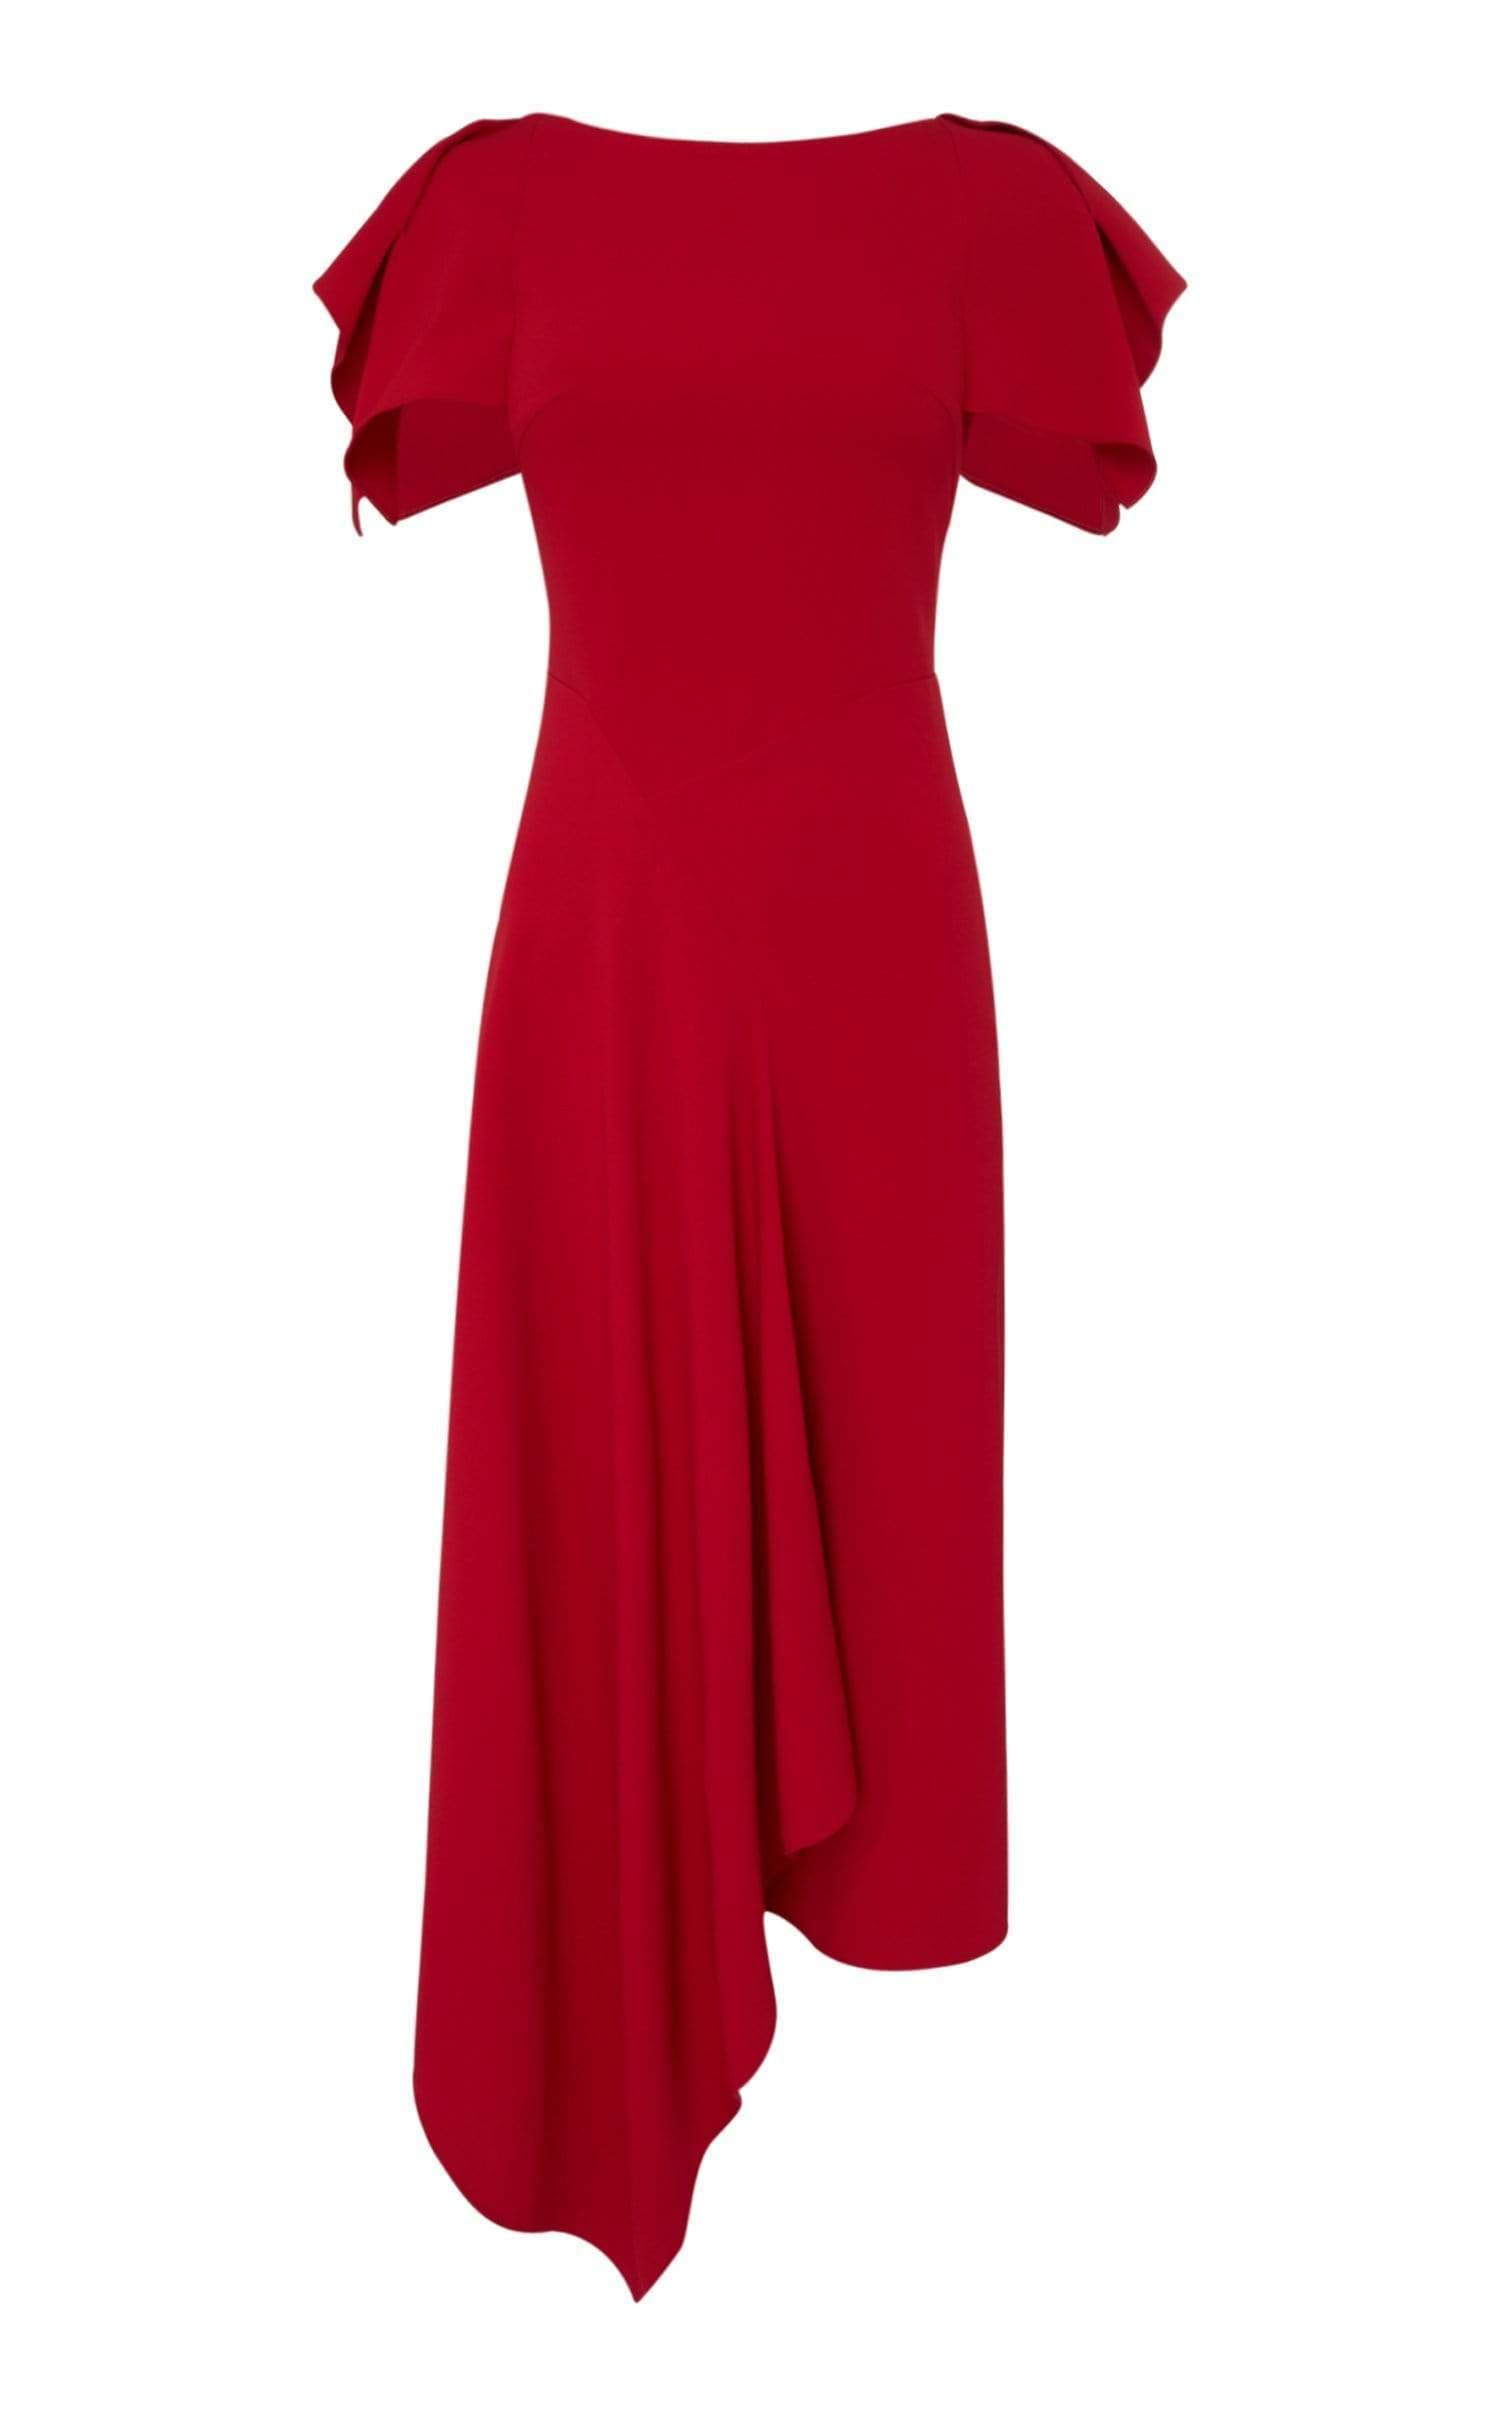 Warren Dress In Persian Red from Roland Mouret